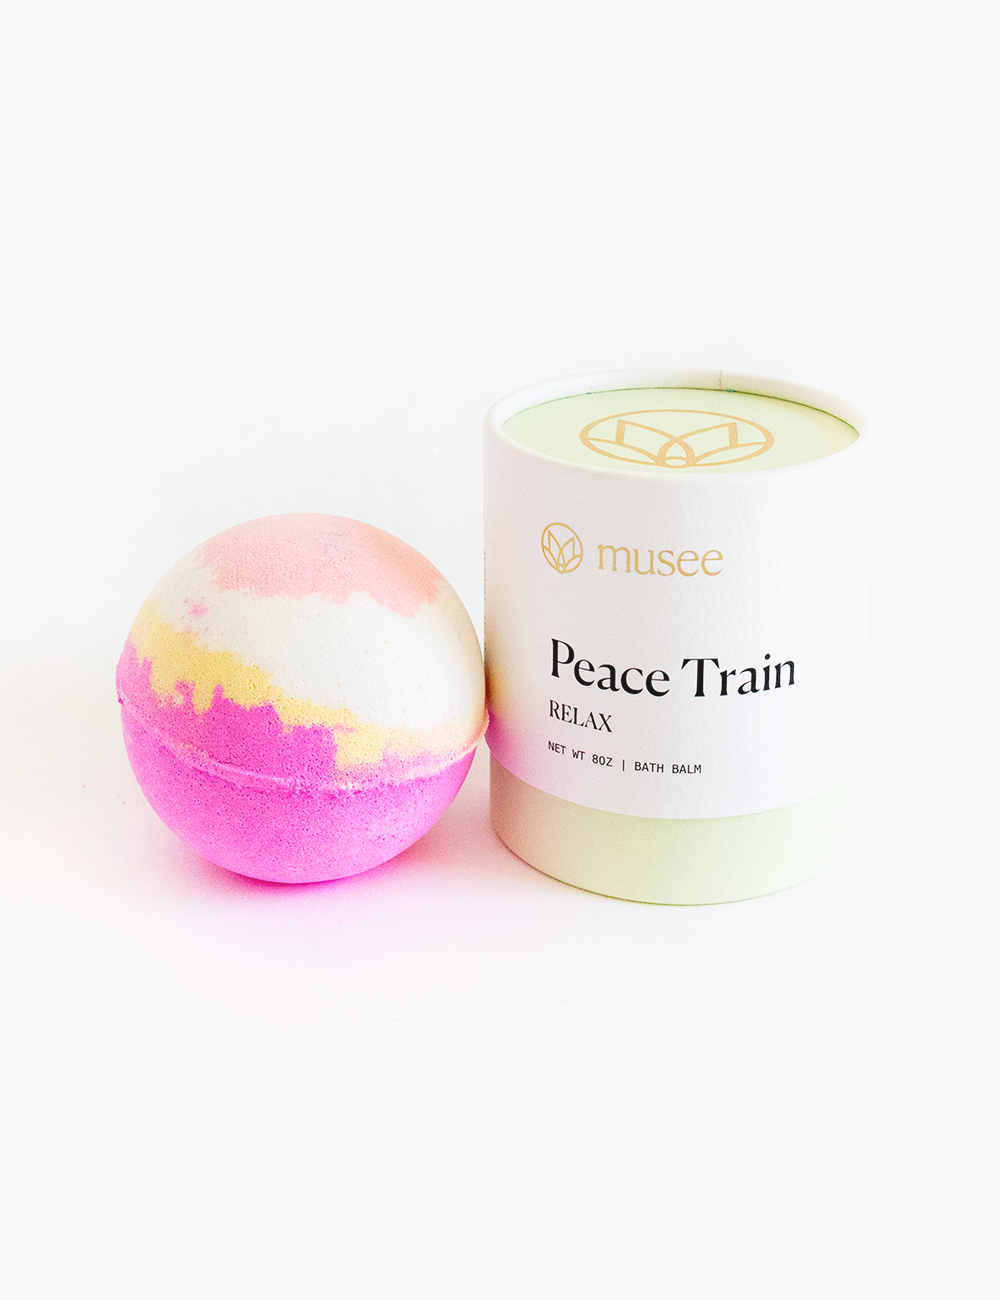 Cylindrical packaging is a muted green color with a white musee peace train label. Next to the packaging is an unpackaged bath bomb. It is pastel pink on top, yellow in the middle, and hot pink on bottom of spherical shape.